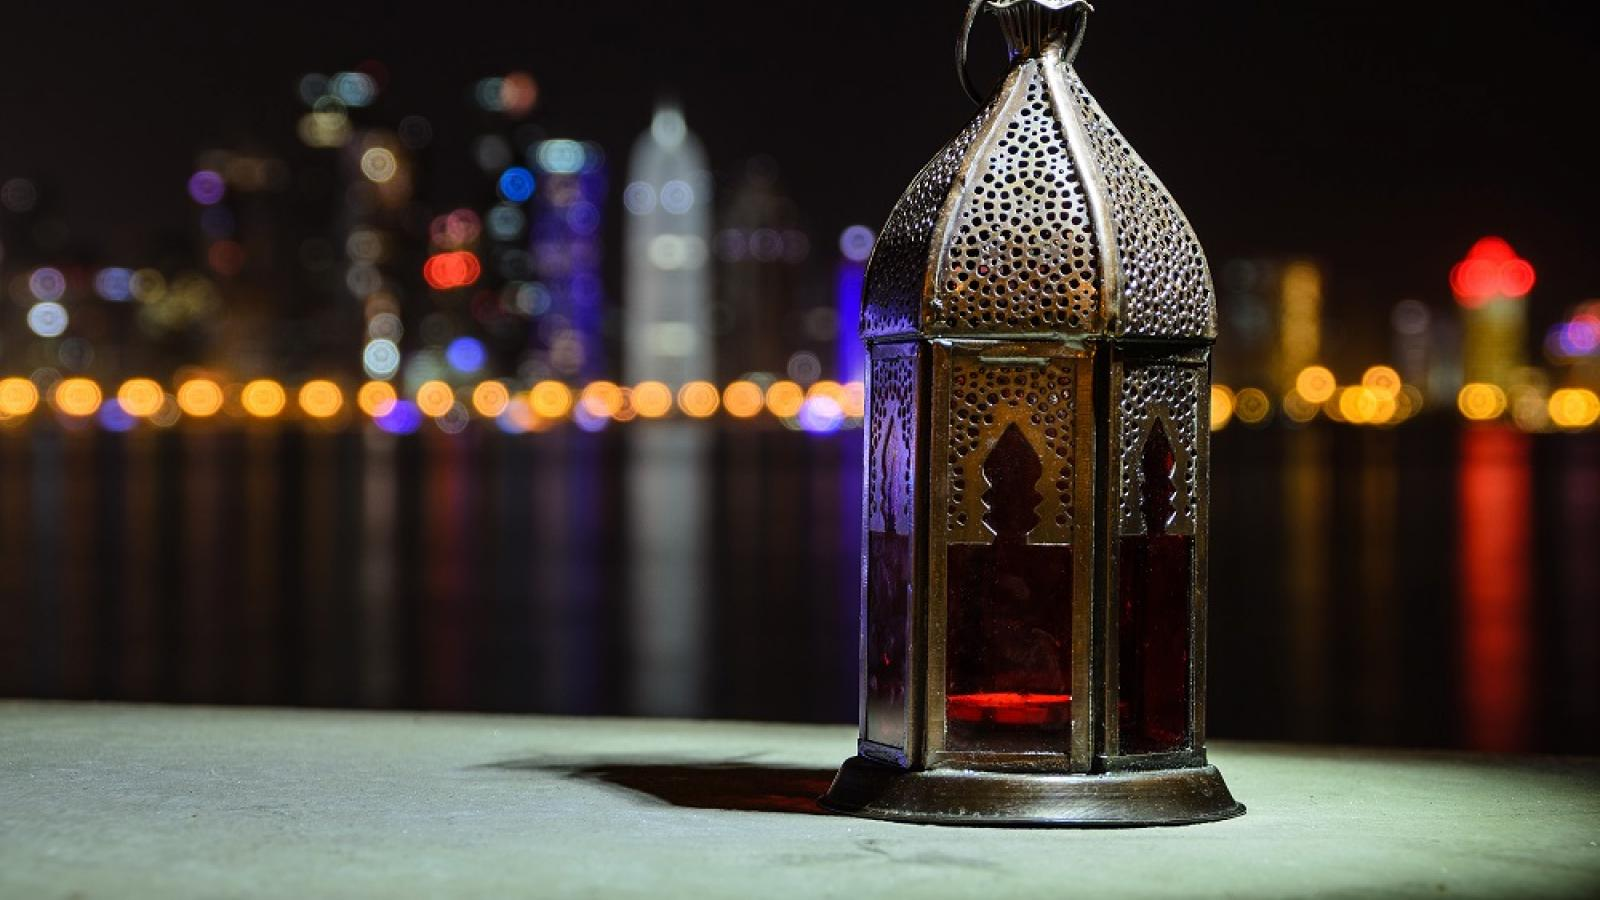 MoPH stresses the importance of staying home during Eid Al-Fitr